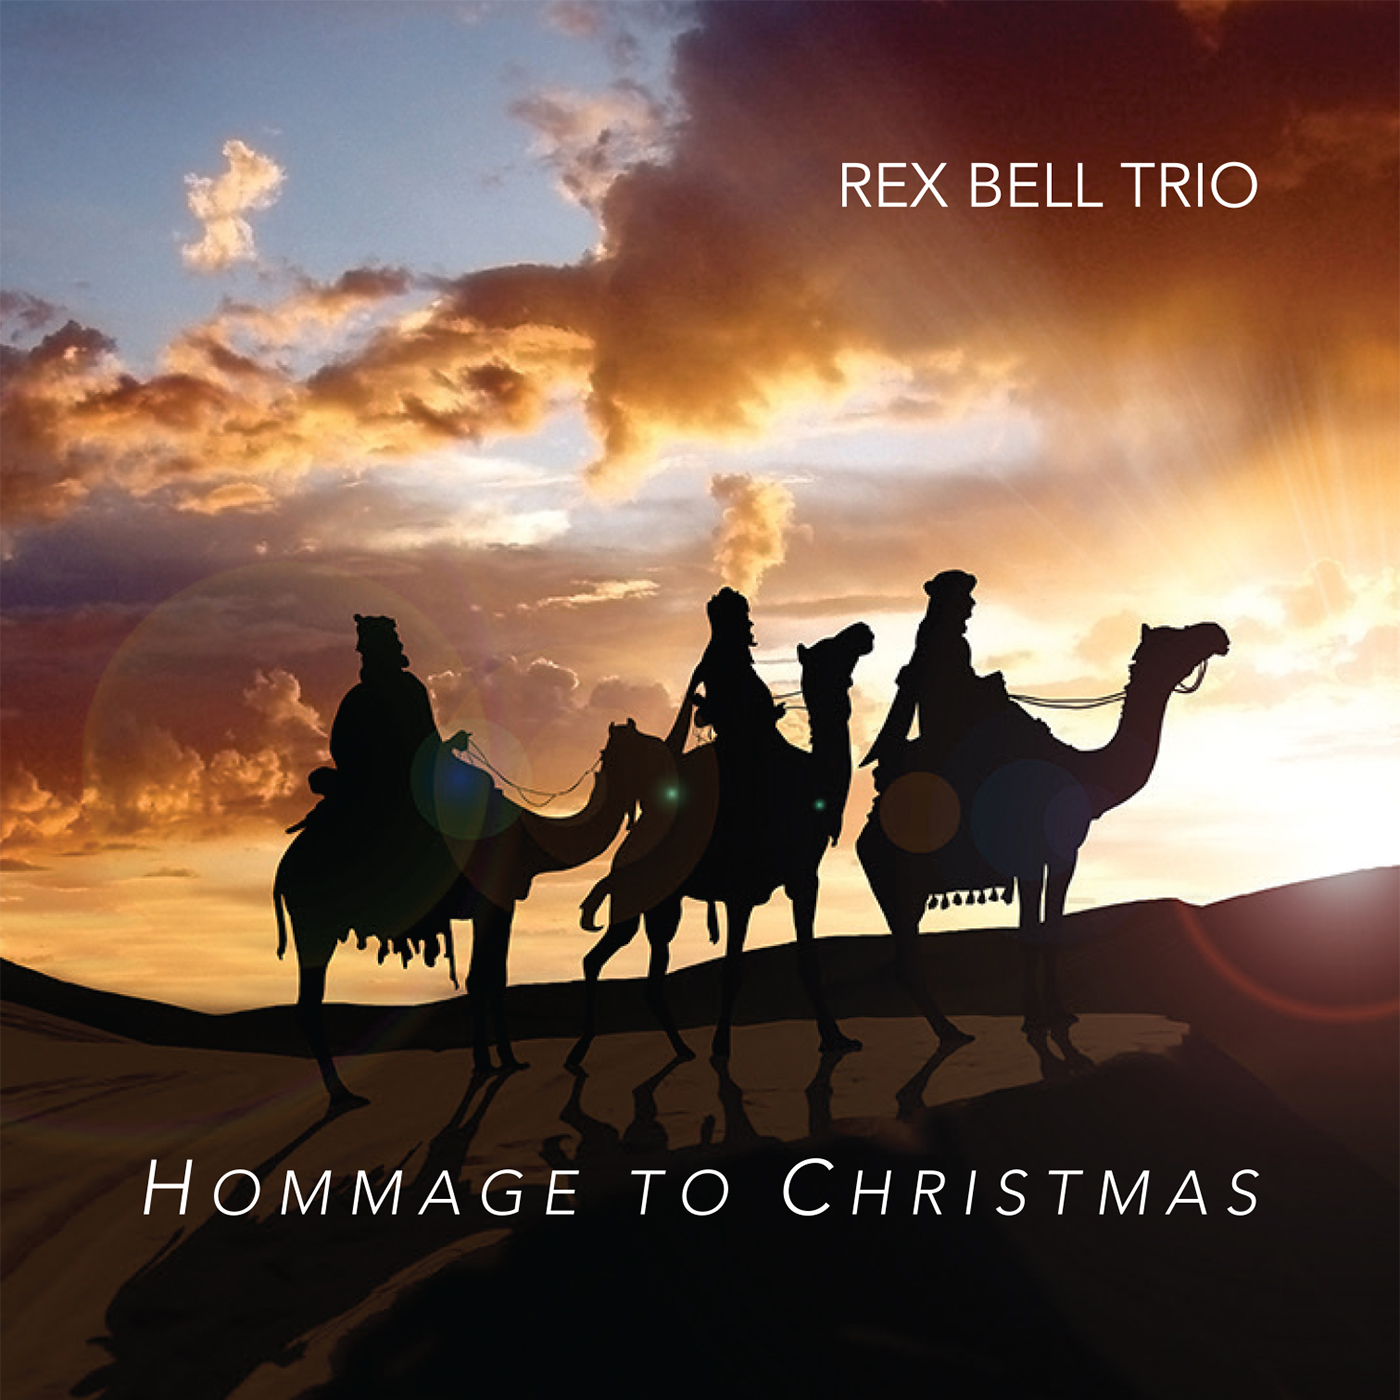 RBT-Hommage-to-Christmas-Cover-CD-Baby